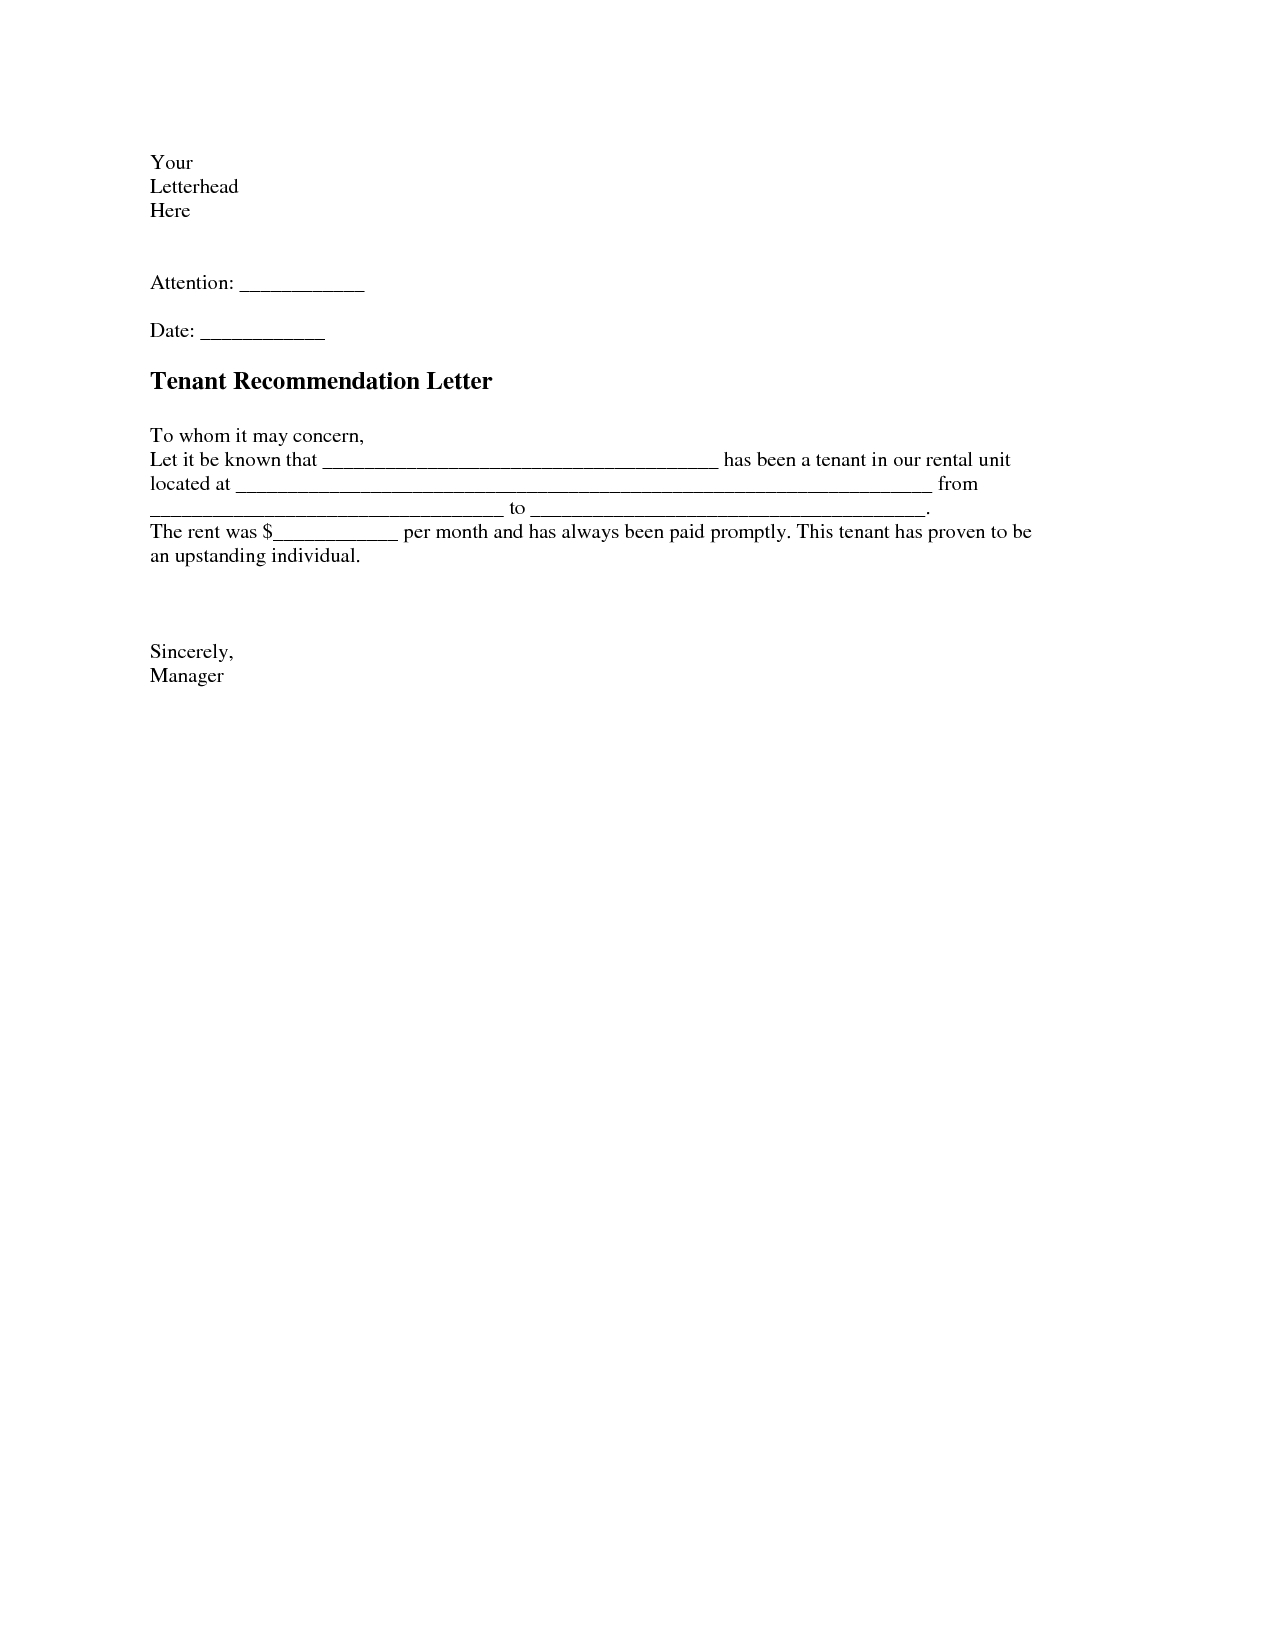 Landlord Eviction Letter Template - Tenant Re Mendation Letter A Tenant Re Mendation Letter is